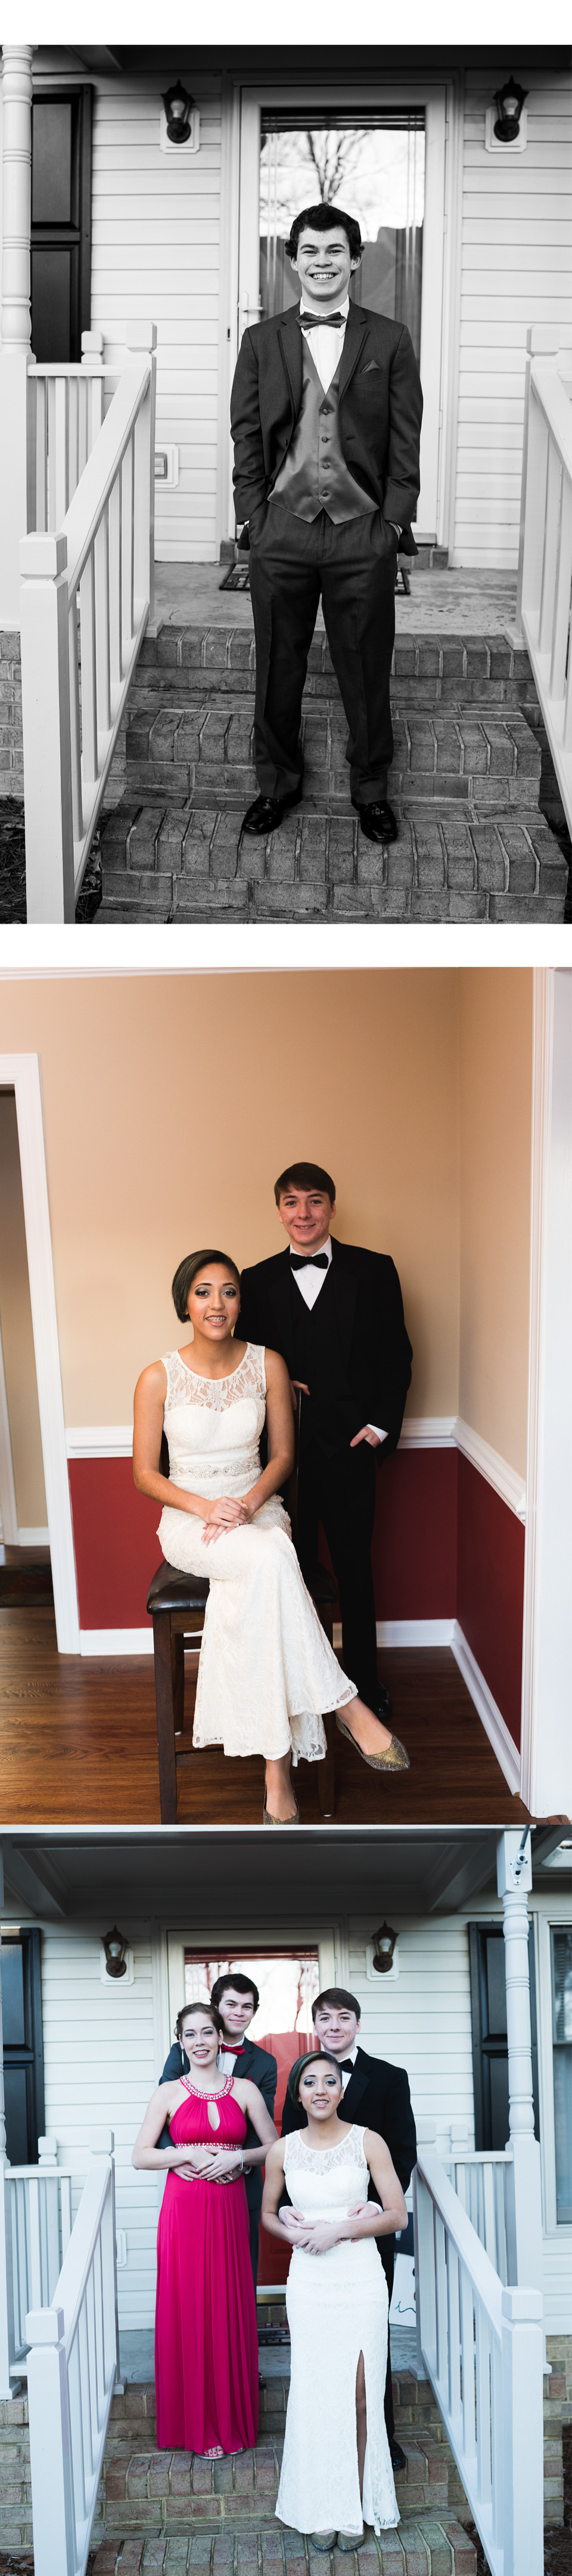 Ring Dance Formal Pictures